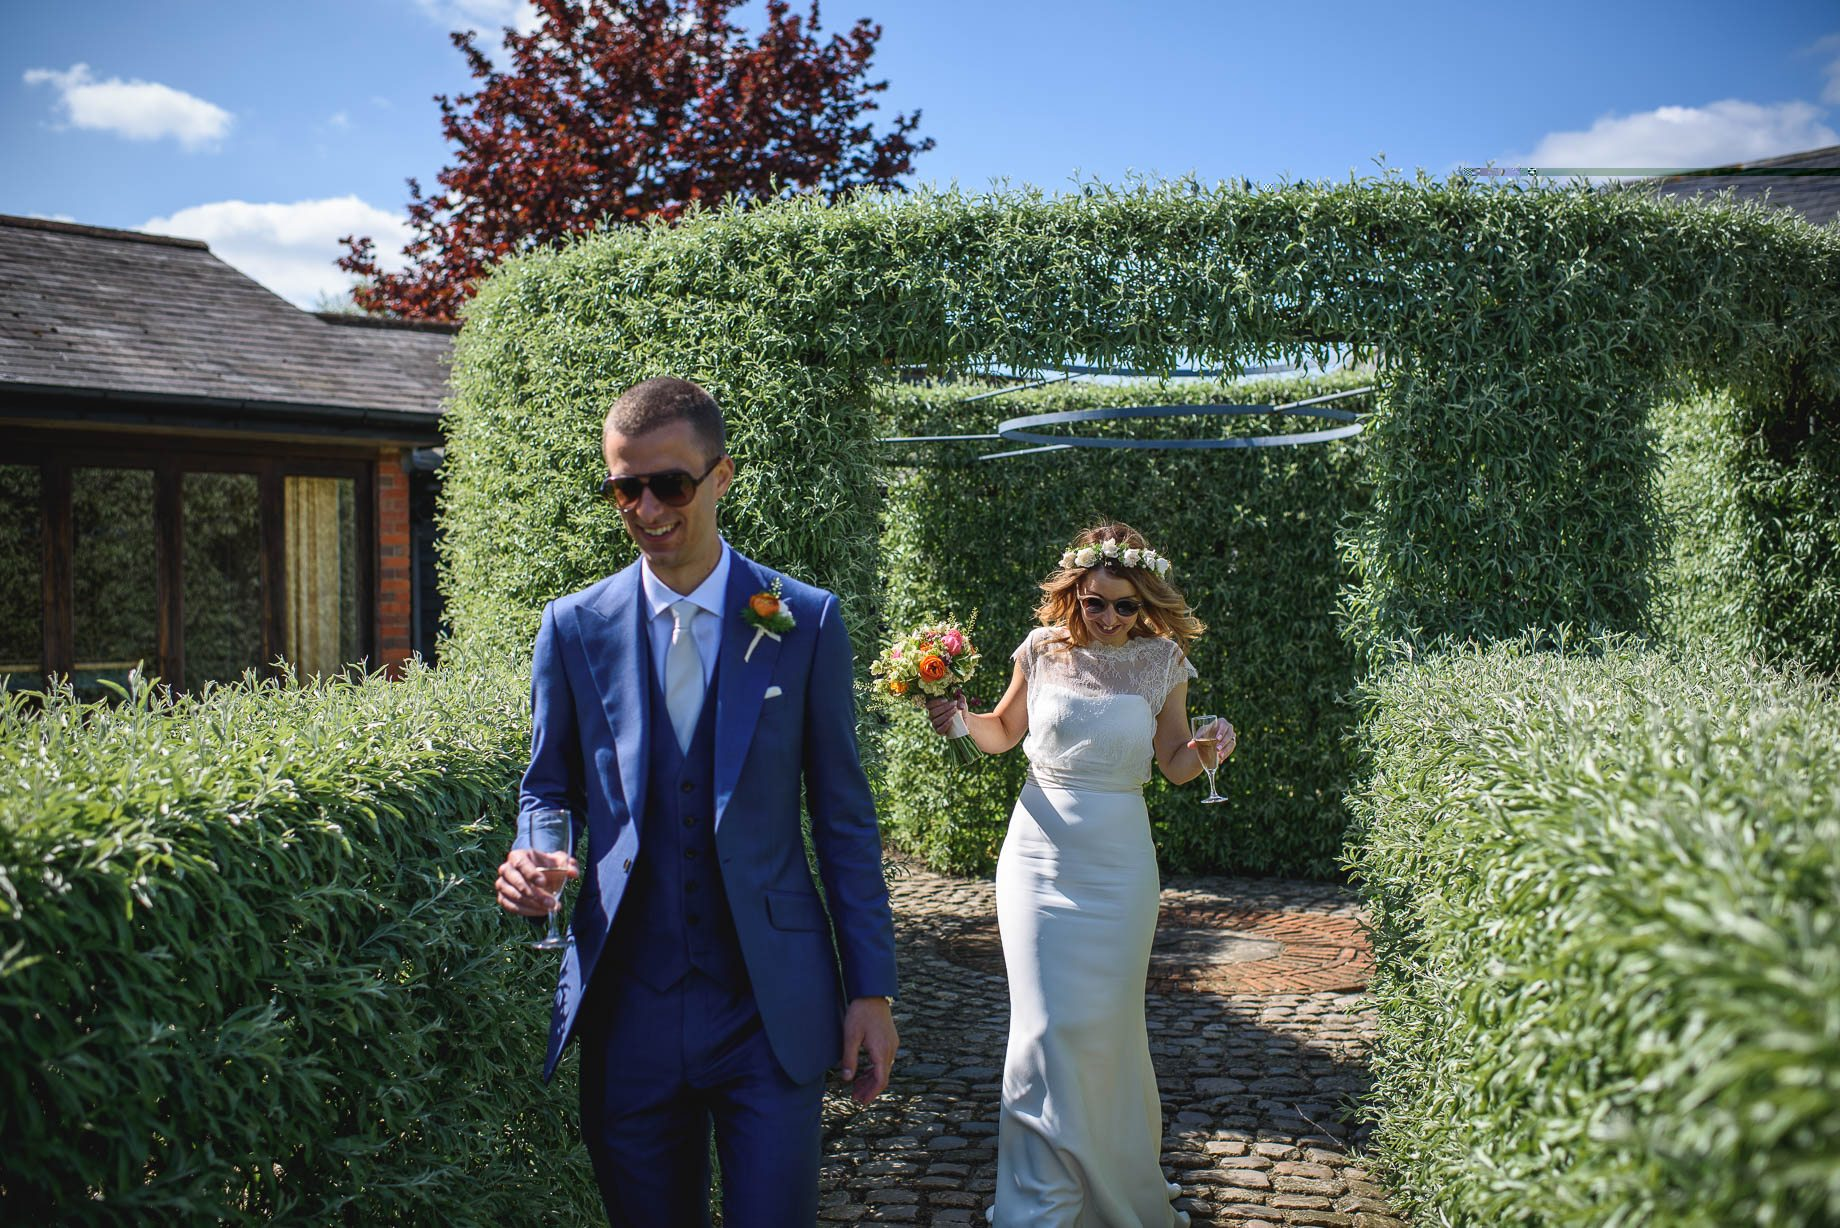 Bury Court Barn wedding photography by Guy Collier - Jo and Jamie (93 of 160)